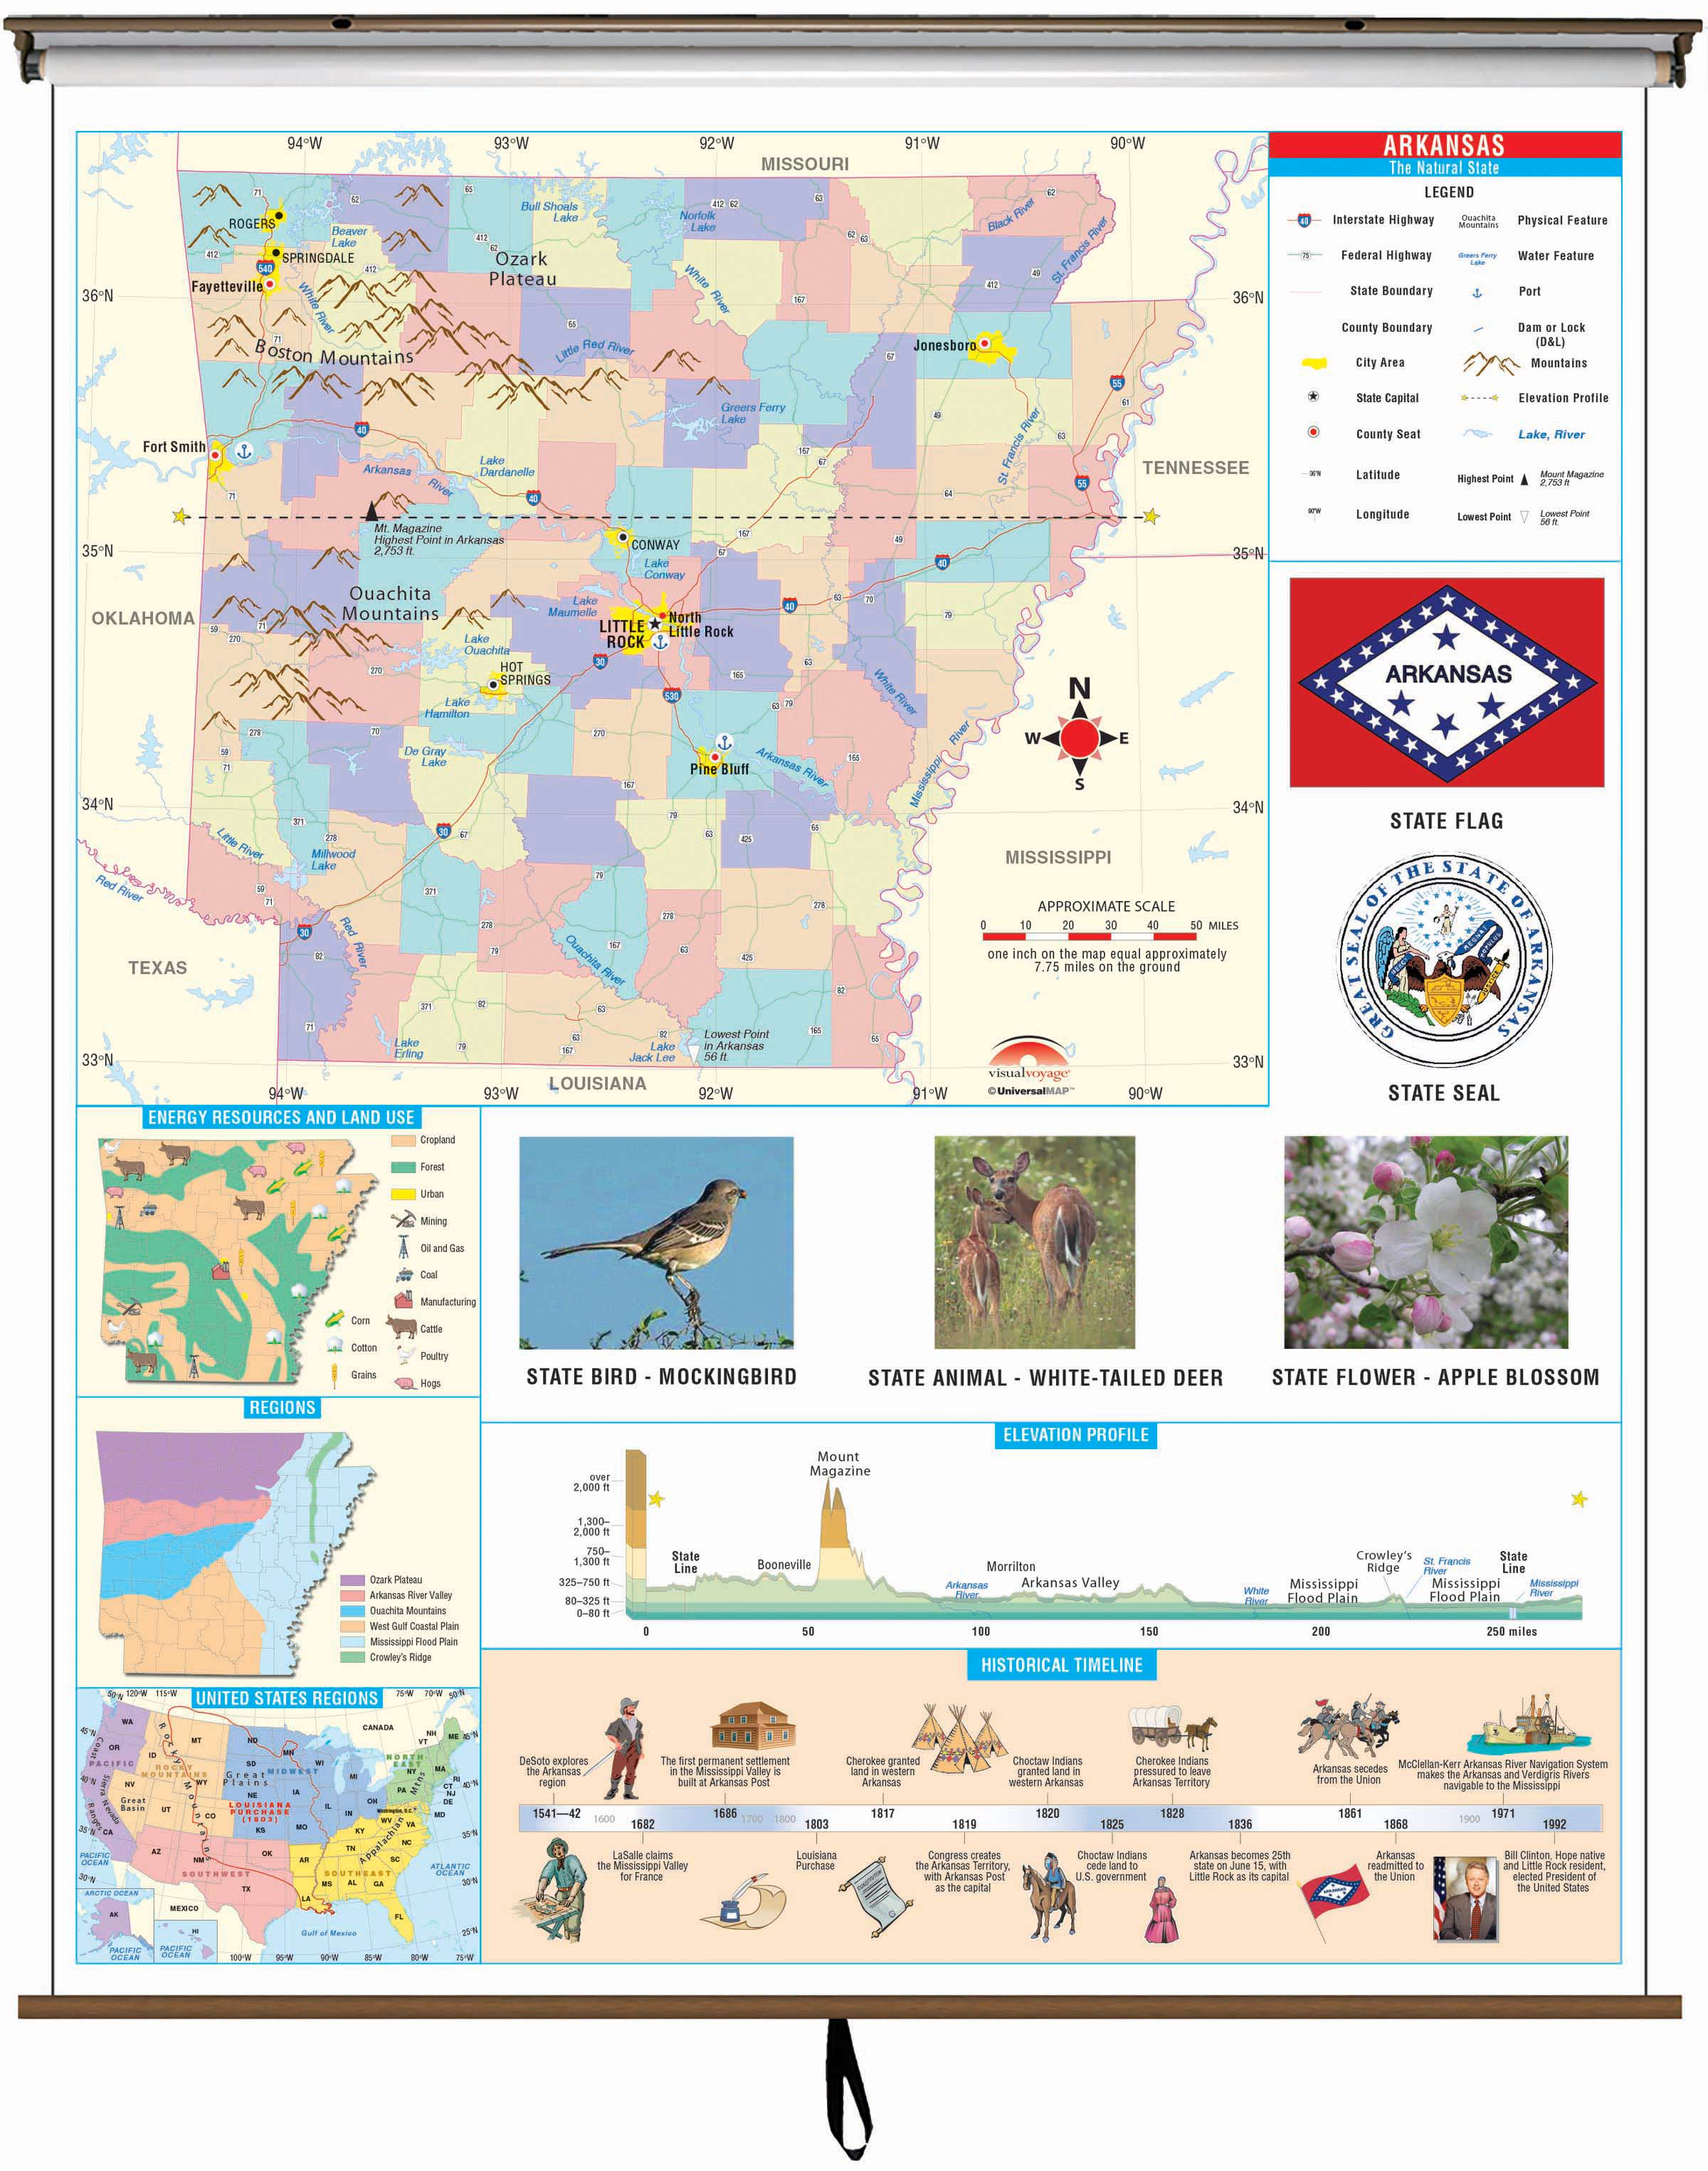 Arkansas State Primary Thematic Wall Map on Roller w/ Backboard ...